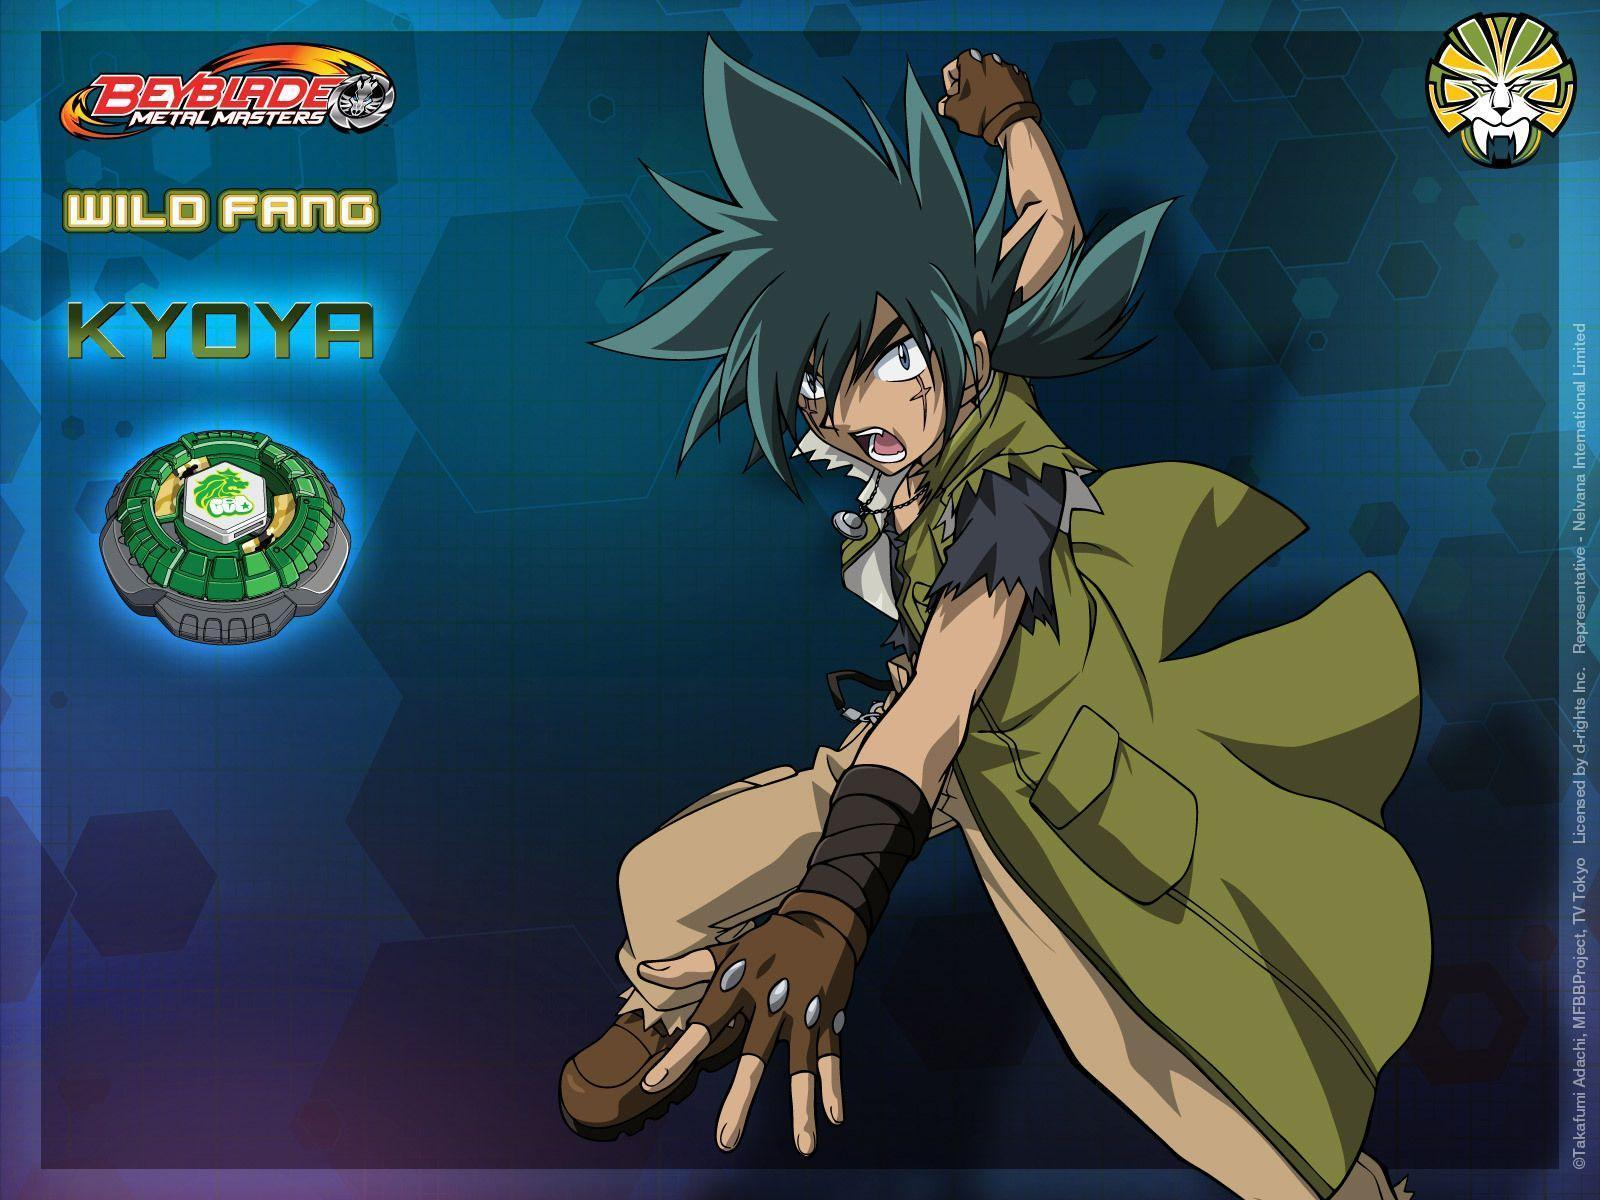 Beyblade metal fusion wallpapers wallpaper cave beyblade metal fusion oc characters images kyoya hd wallpaper and voltagebd Images